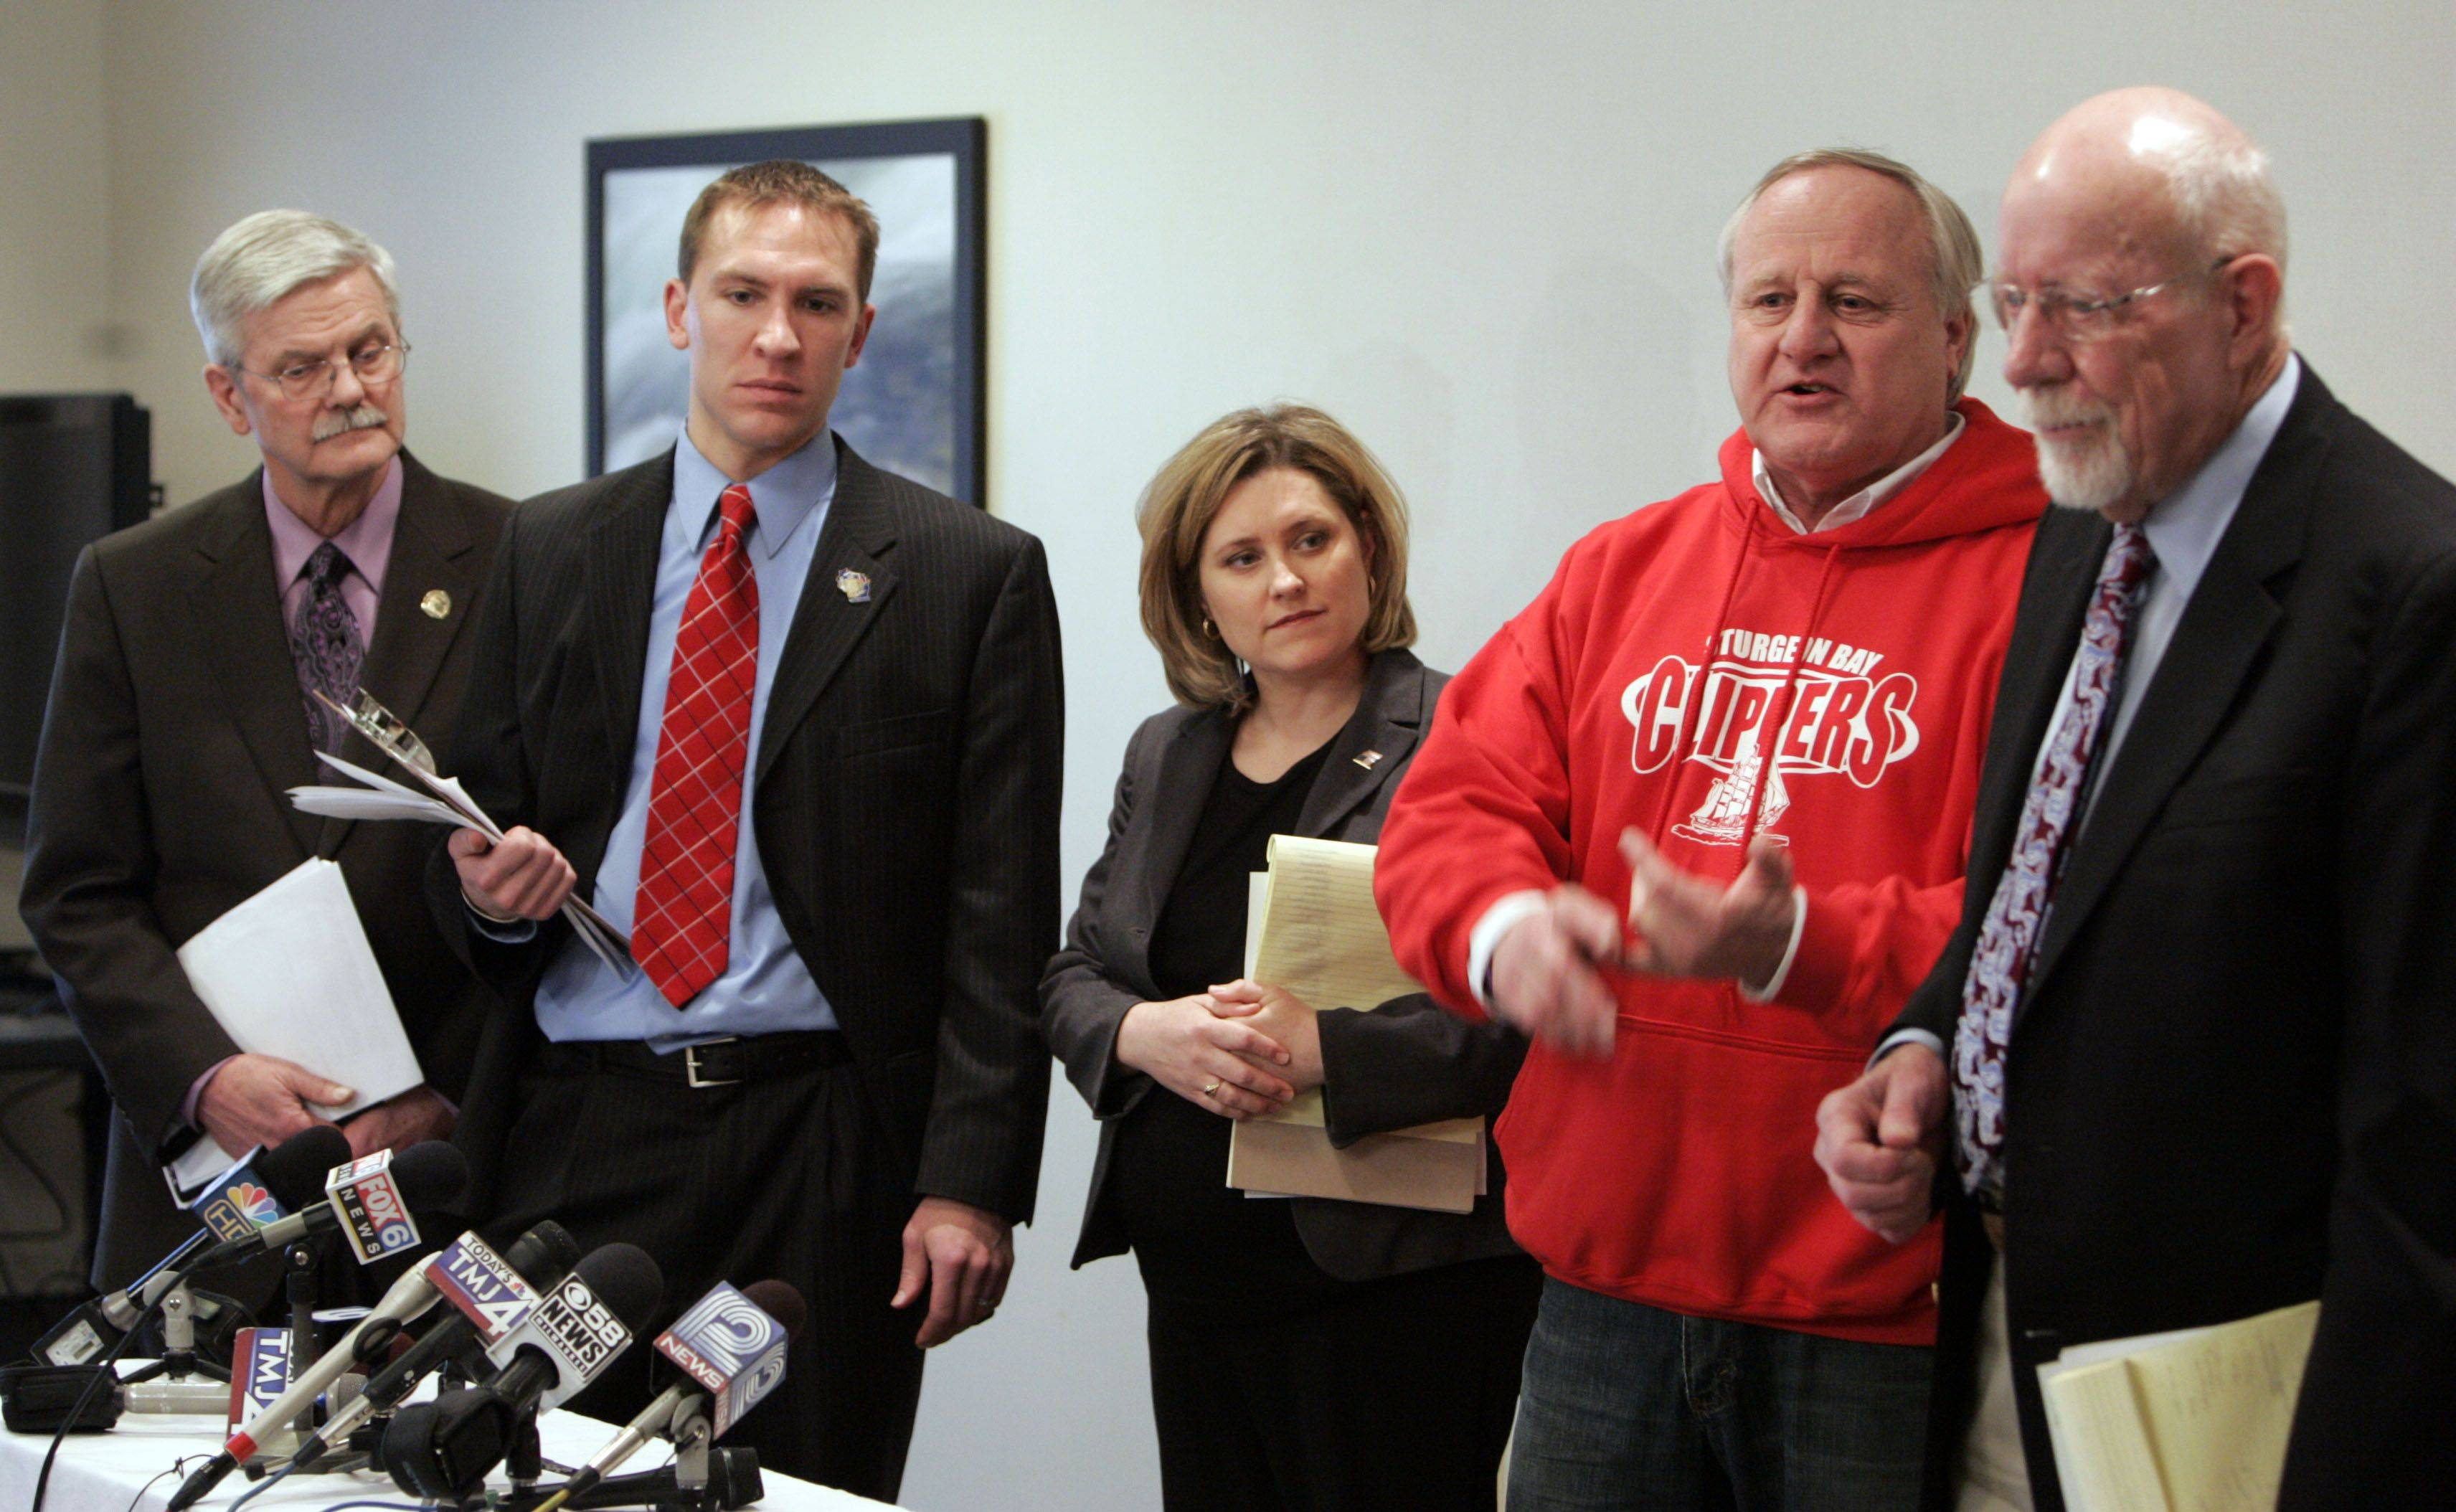 Nomadic Wisconsin state senators Mark Miller, left, Chris Larson, Julie Lassa Dave Hansen and Fred Risser address the media at the Comfort Suites in Grayslake after Gov. Scott Walker's speech Tuesday.